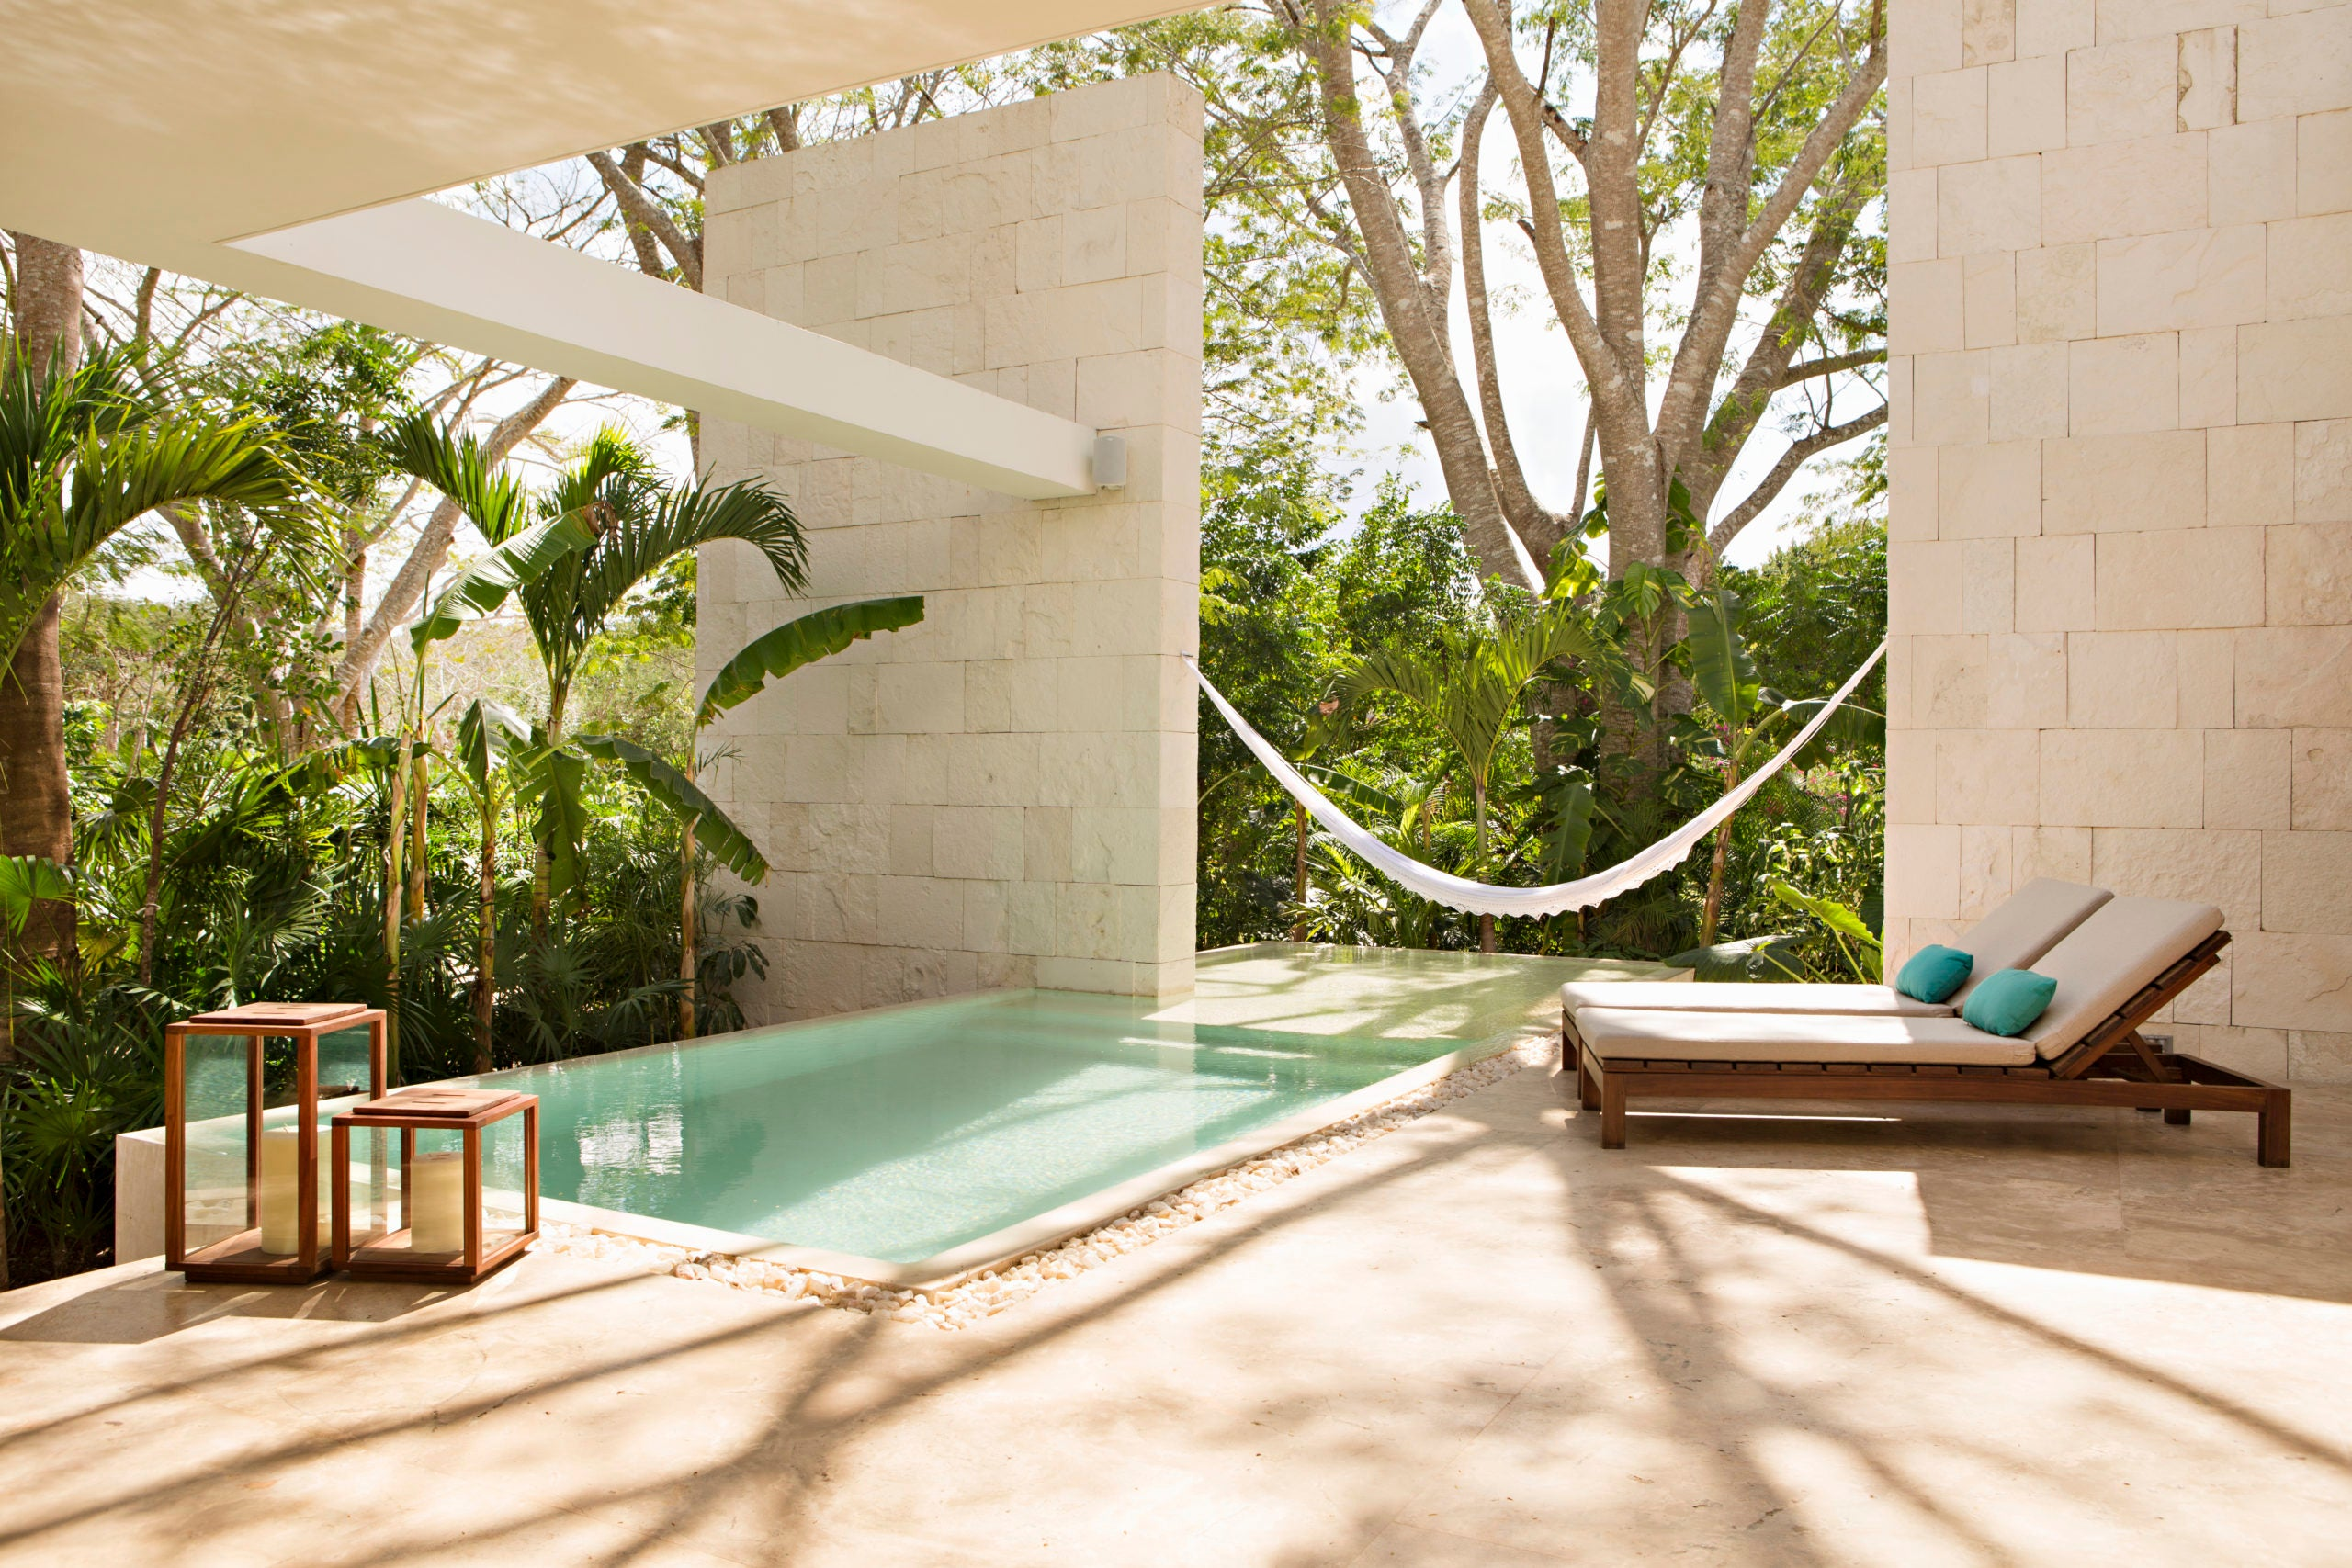 Chable - Luxury Wellness Retreats for the New Year